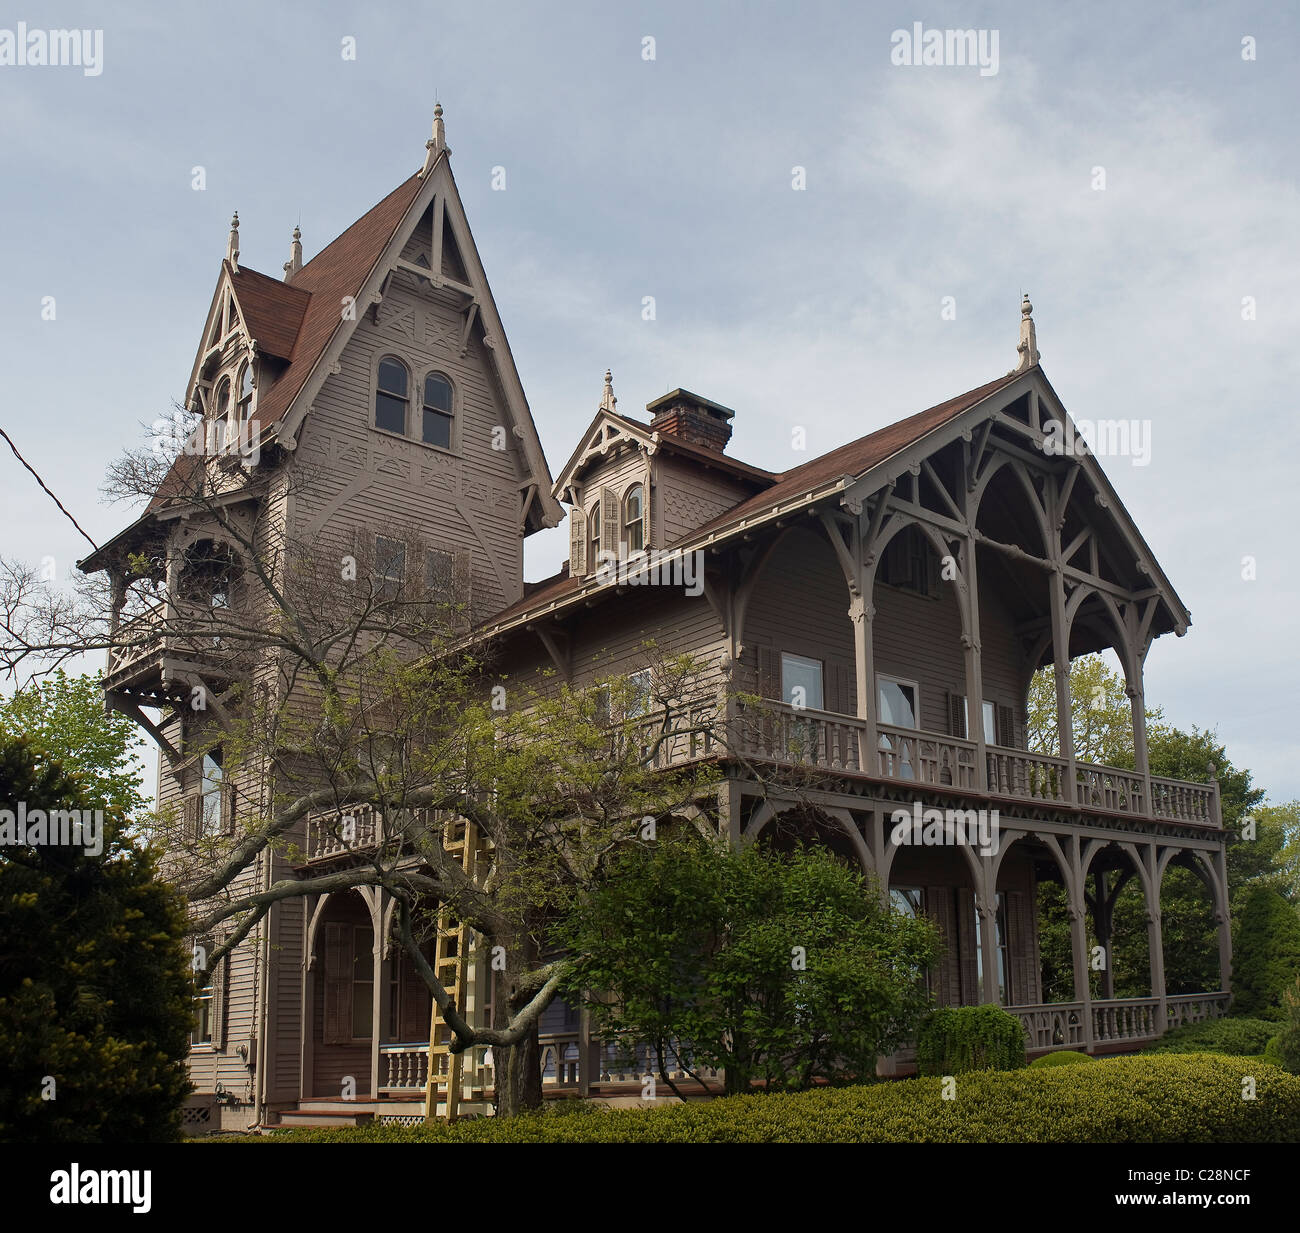 564 best Gothic Revival Victorian Houses images on Pinterest .